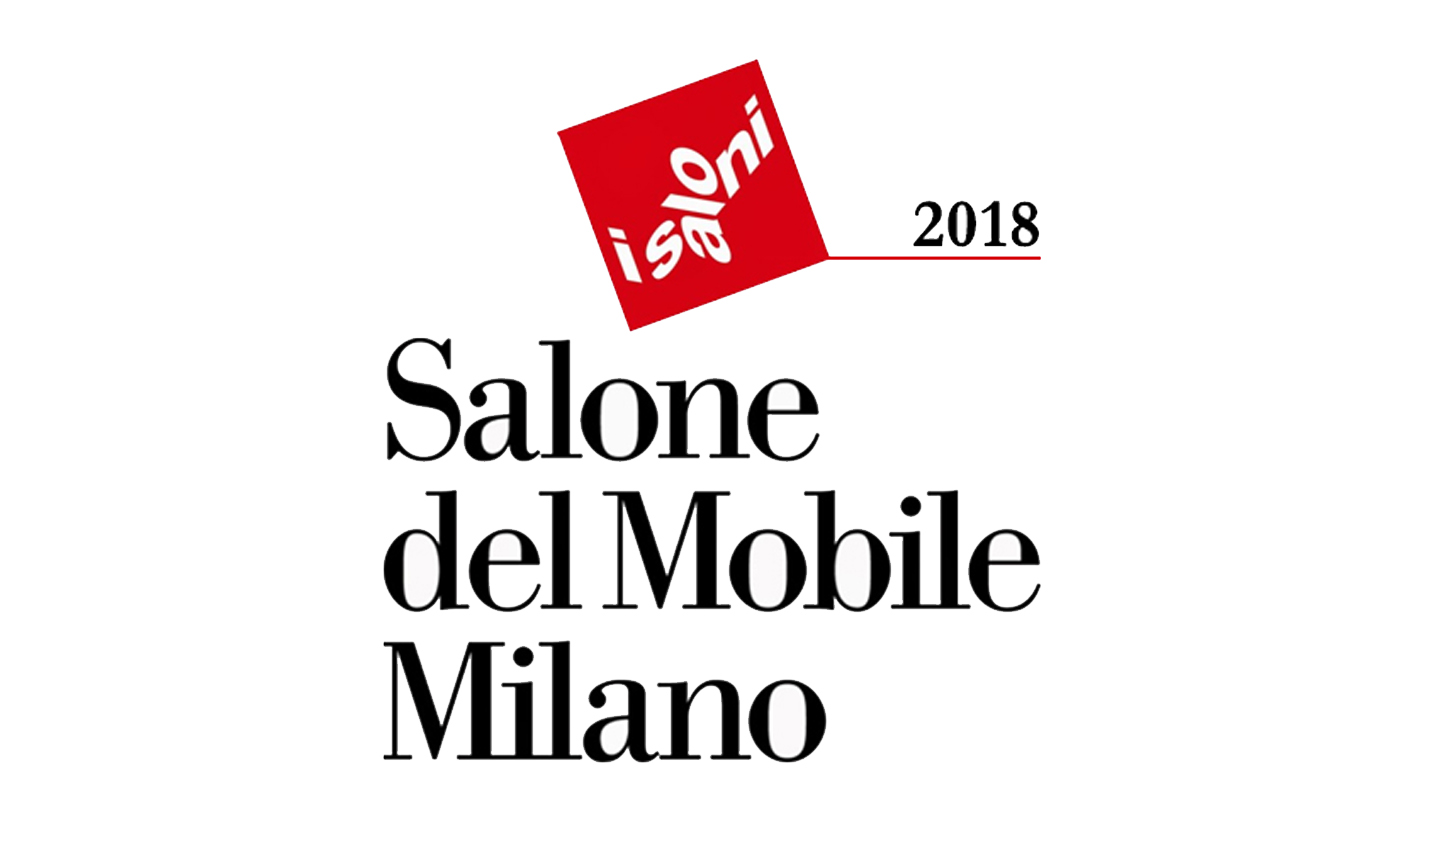 Meet The Winners of the CovetED Awards Presented at iSaloni 2018 milan apartment Tour This Milan Apartment That Got A Renovation Meet The Winners of the CovetED Awards Presented at iSaloni 2018 01 milan apartment Tour This Milan Apartment That Got A Renovation Meet The Winners of the CovetED Awards Presented at iSaloni 2018 01